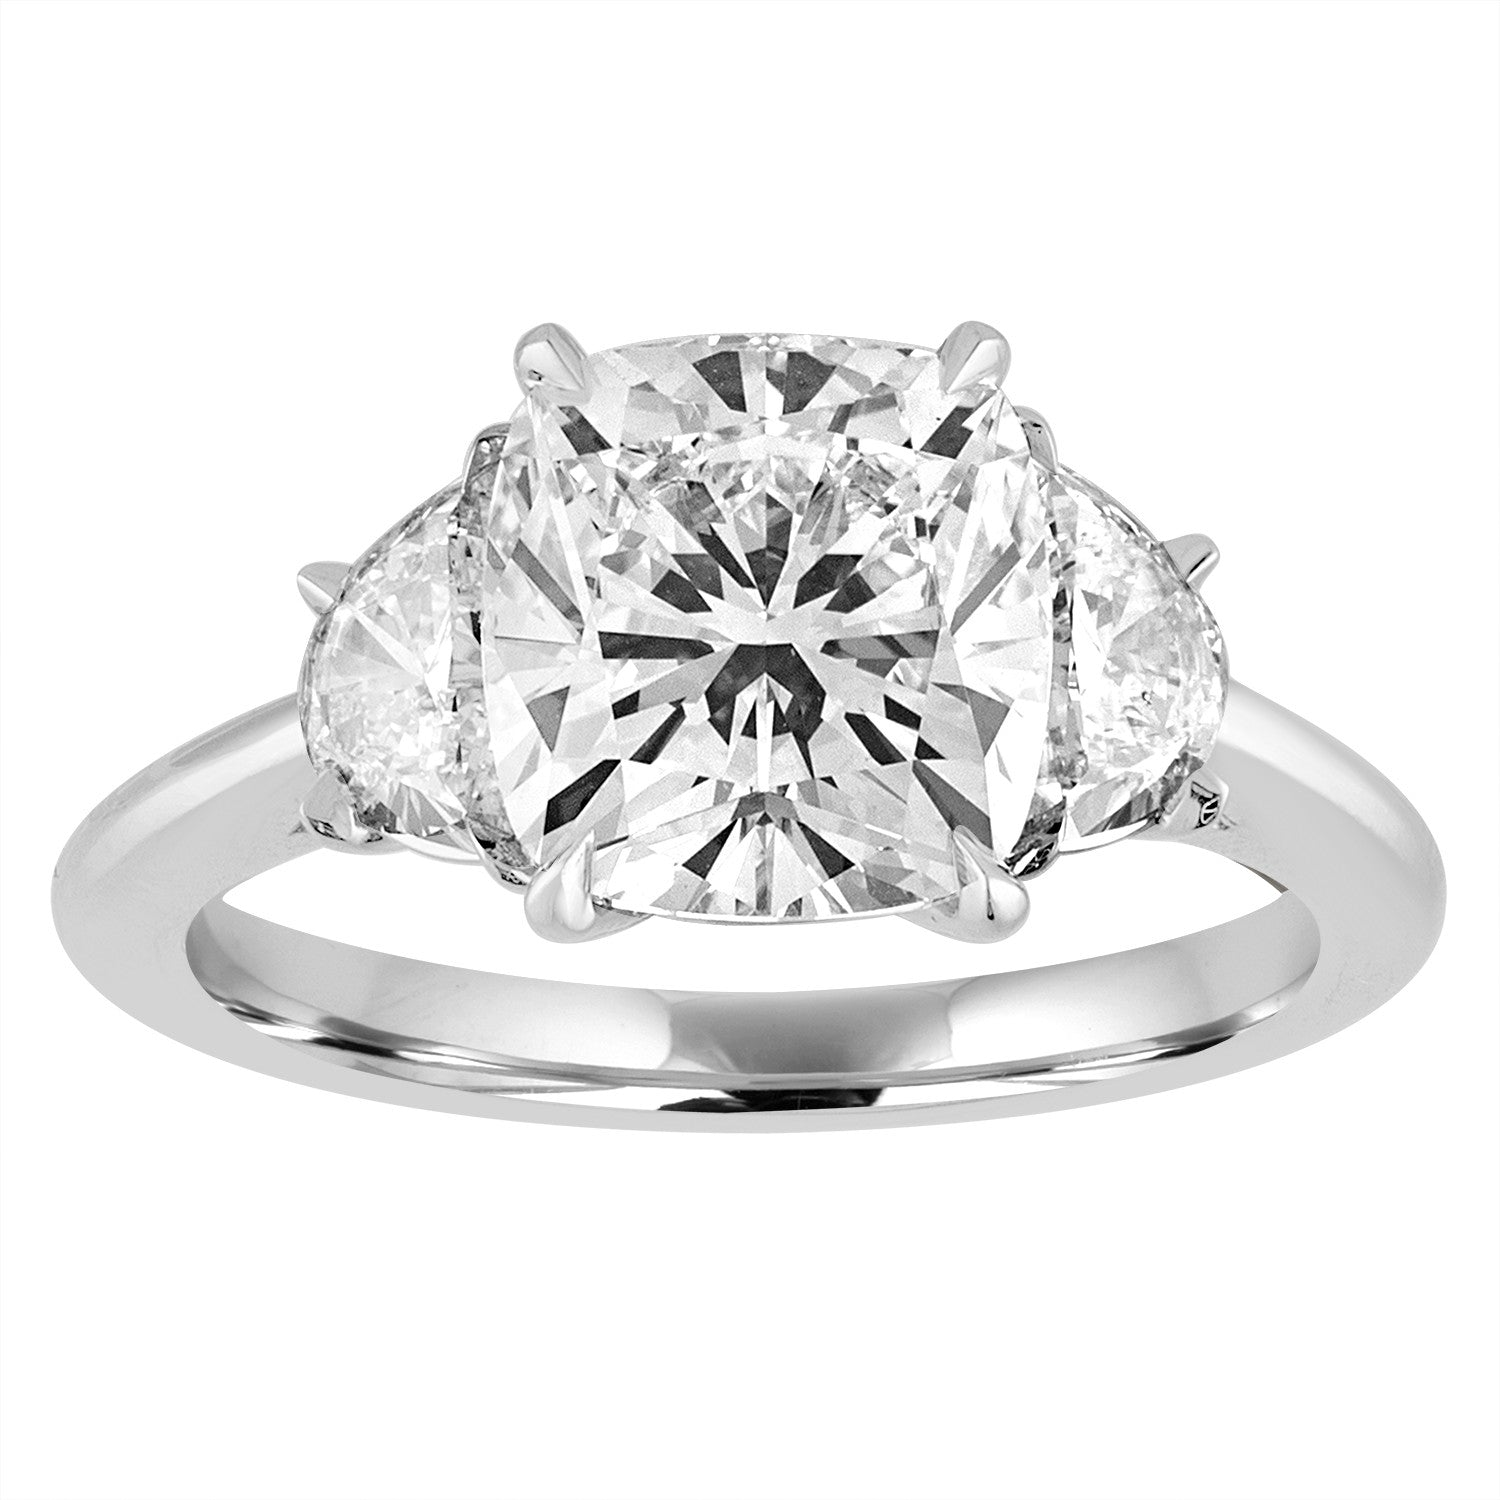 Cushion Cut Engagement Ring With Half Moon Side Stones Stephanie